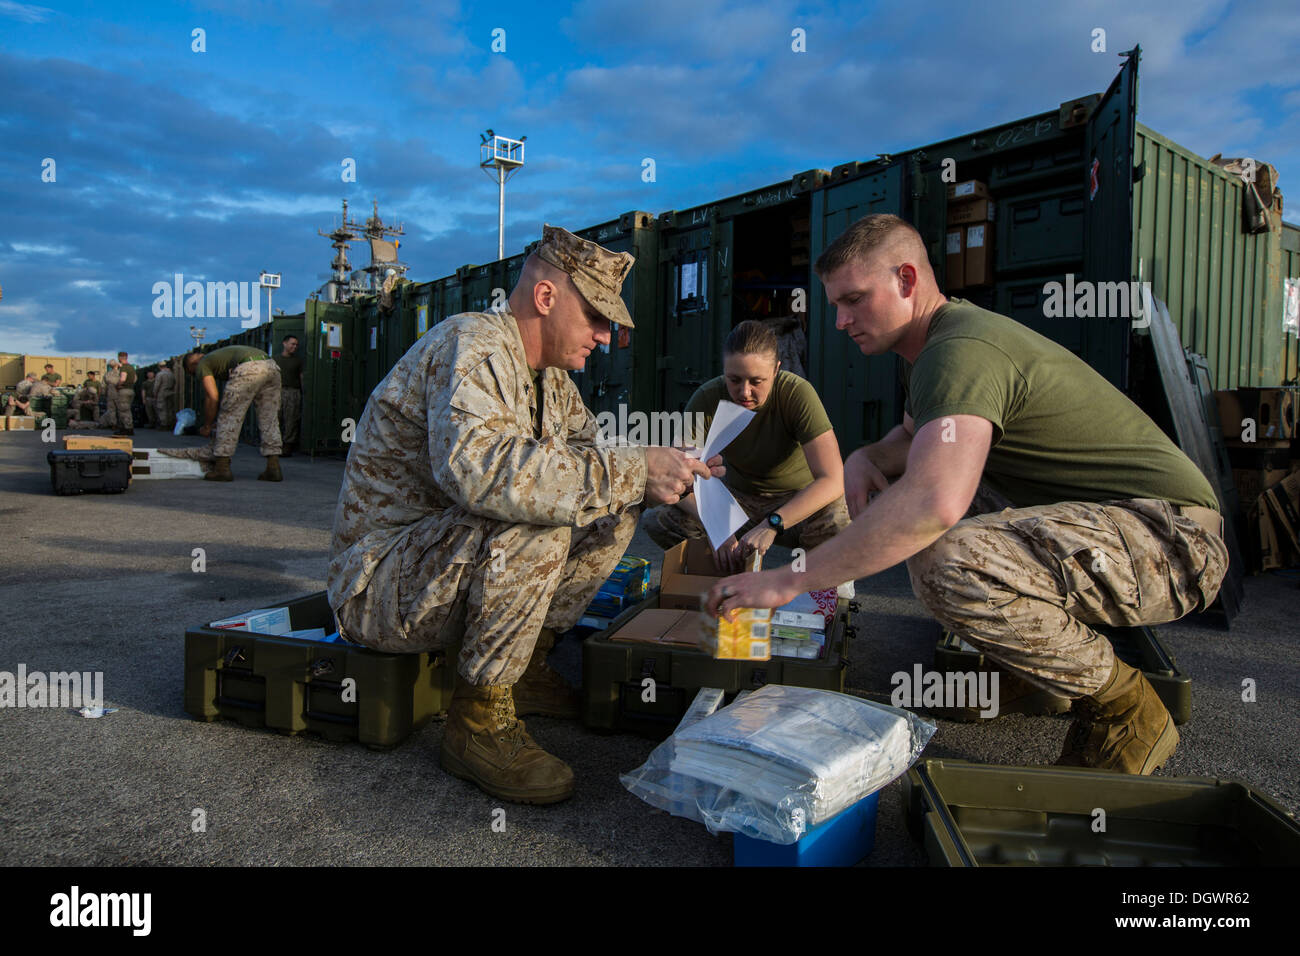 26th Marine Expeditionary Unit (MEU) medical personnel sort pharmaceutical supplies before having their shipping containers inspected by U.S. Customs agents during the 26th MEU's wash down in Naval Station Rota, Spain, Oct. 19, 2013. The 26th MEU is a Mar - Stock Image